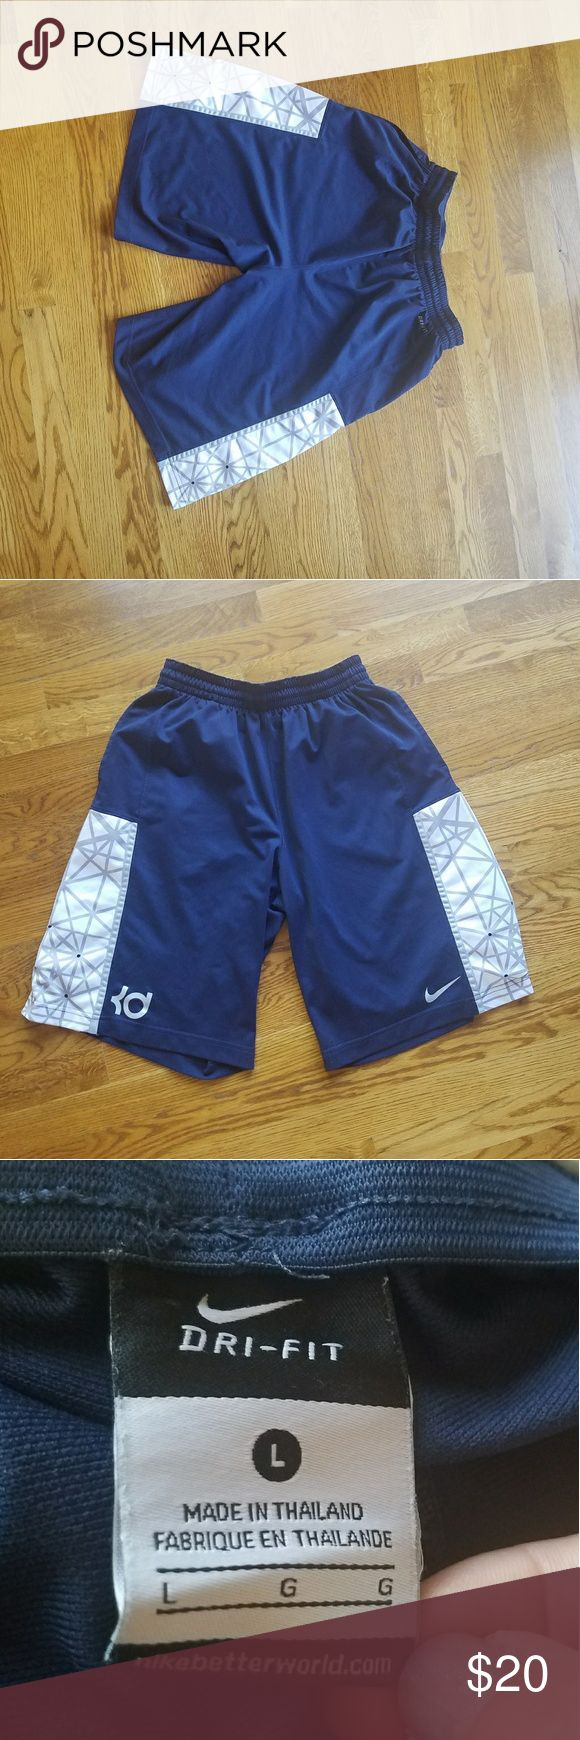 Nike KD basketball shorts size large VGUC firm Men's size large Kevin Durant basketball shorts, there a good used condition, Dri-Fit, side panels with mesh for breathability and moisture wicking, adjustable waist, and mesh pockets. Smoke-free home, no trades or transactions outside of Poshmark. I have $20 invested in these already so I can't go lower than that for the price. Nike Shorts Athletic